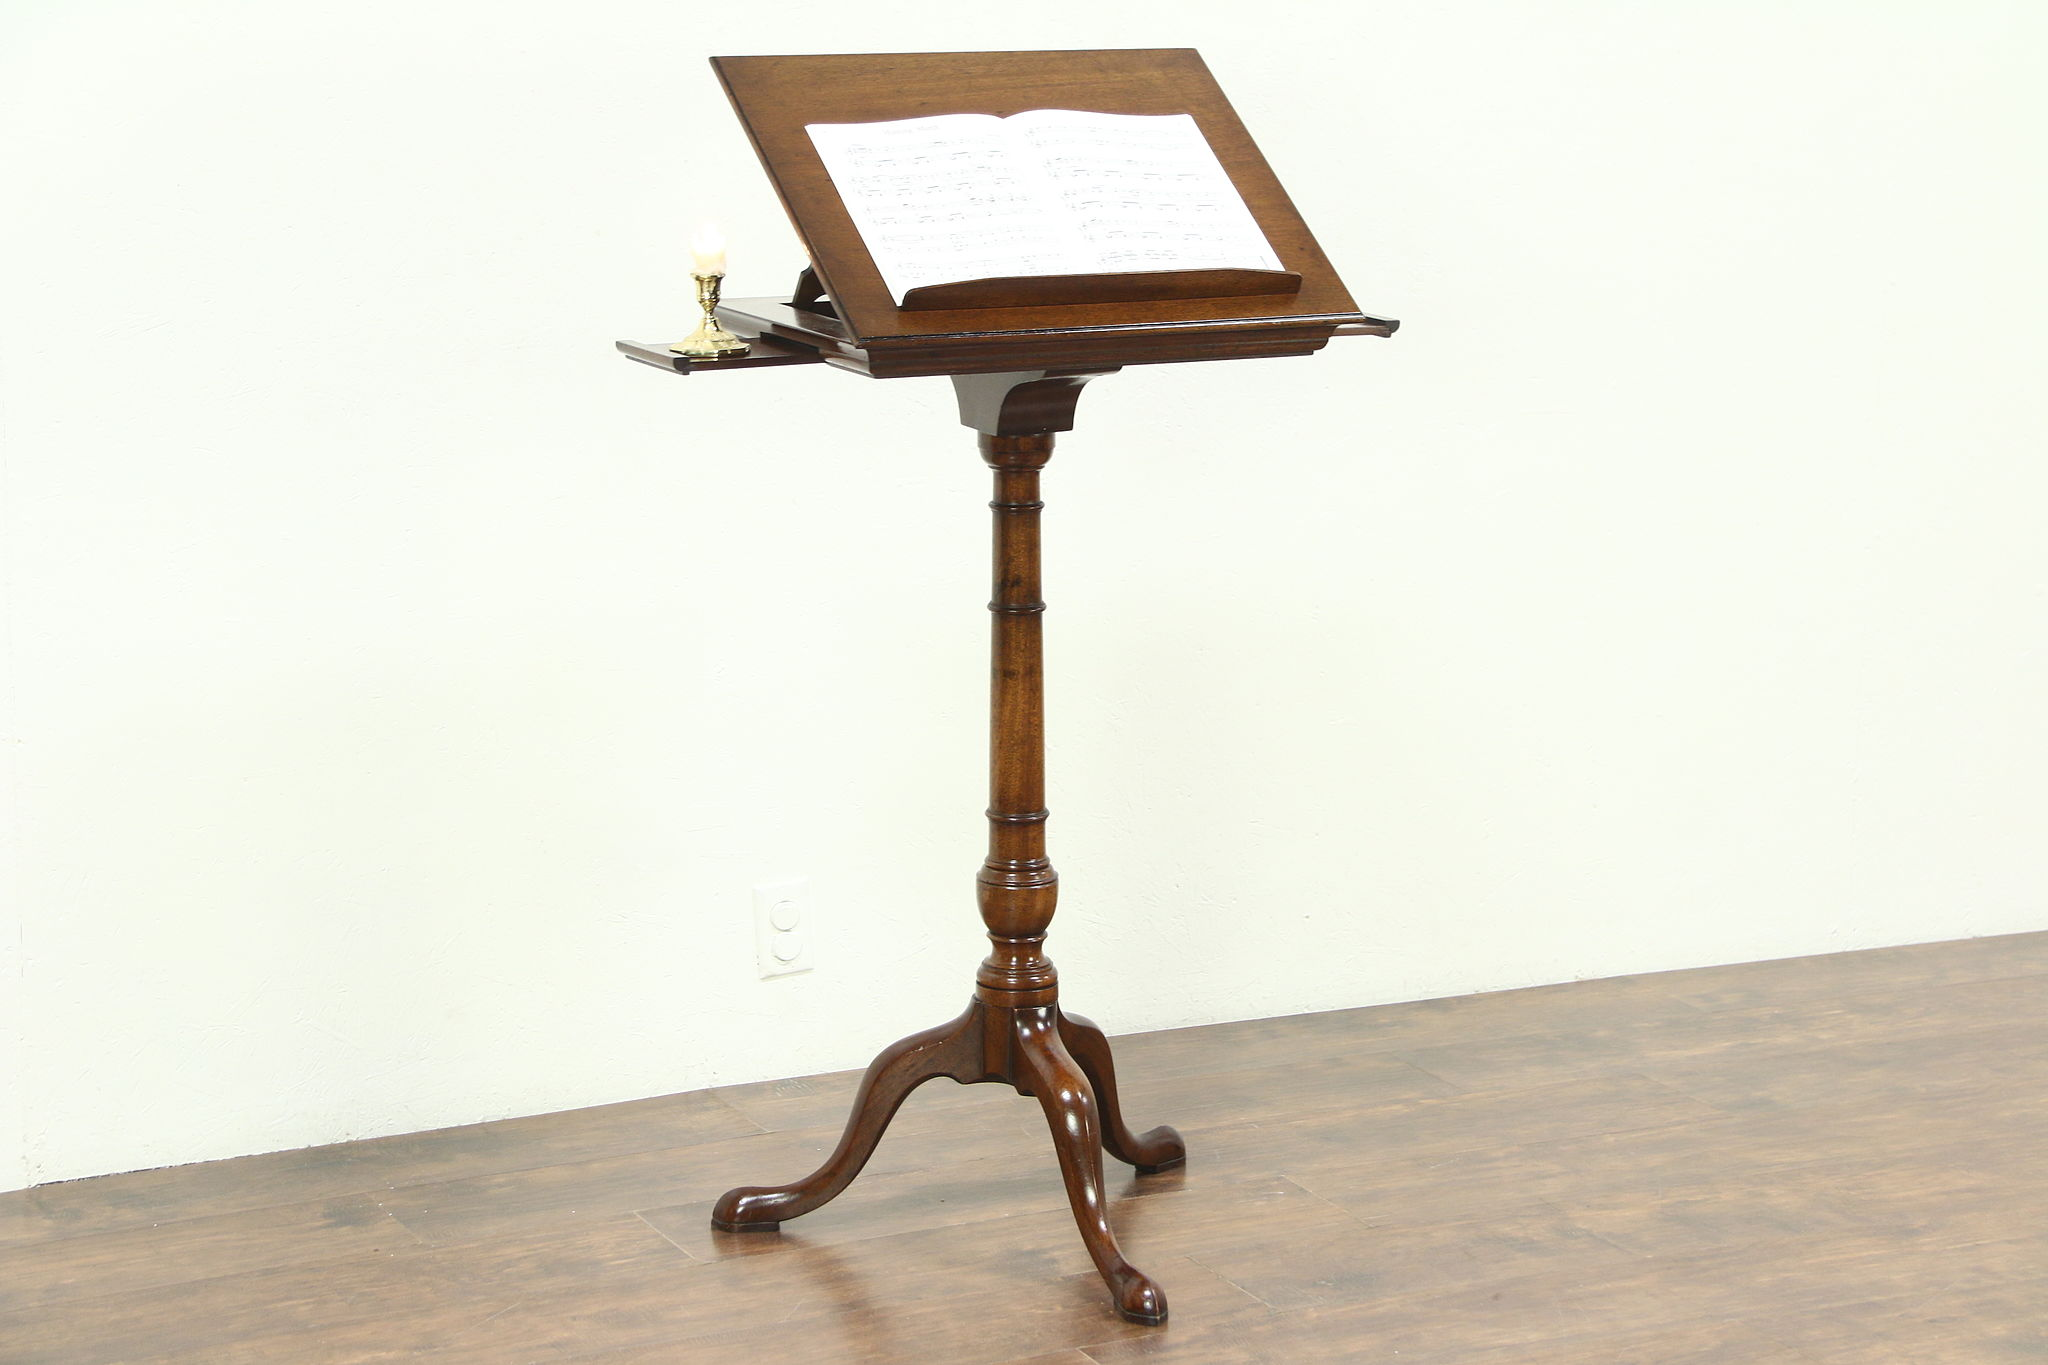 Traditional Gany Adjule Vintage Or Book Stand Reception Podium